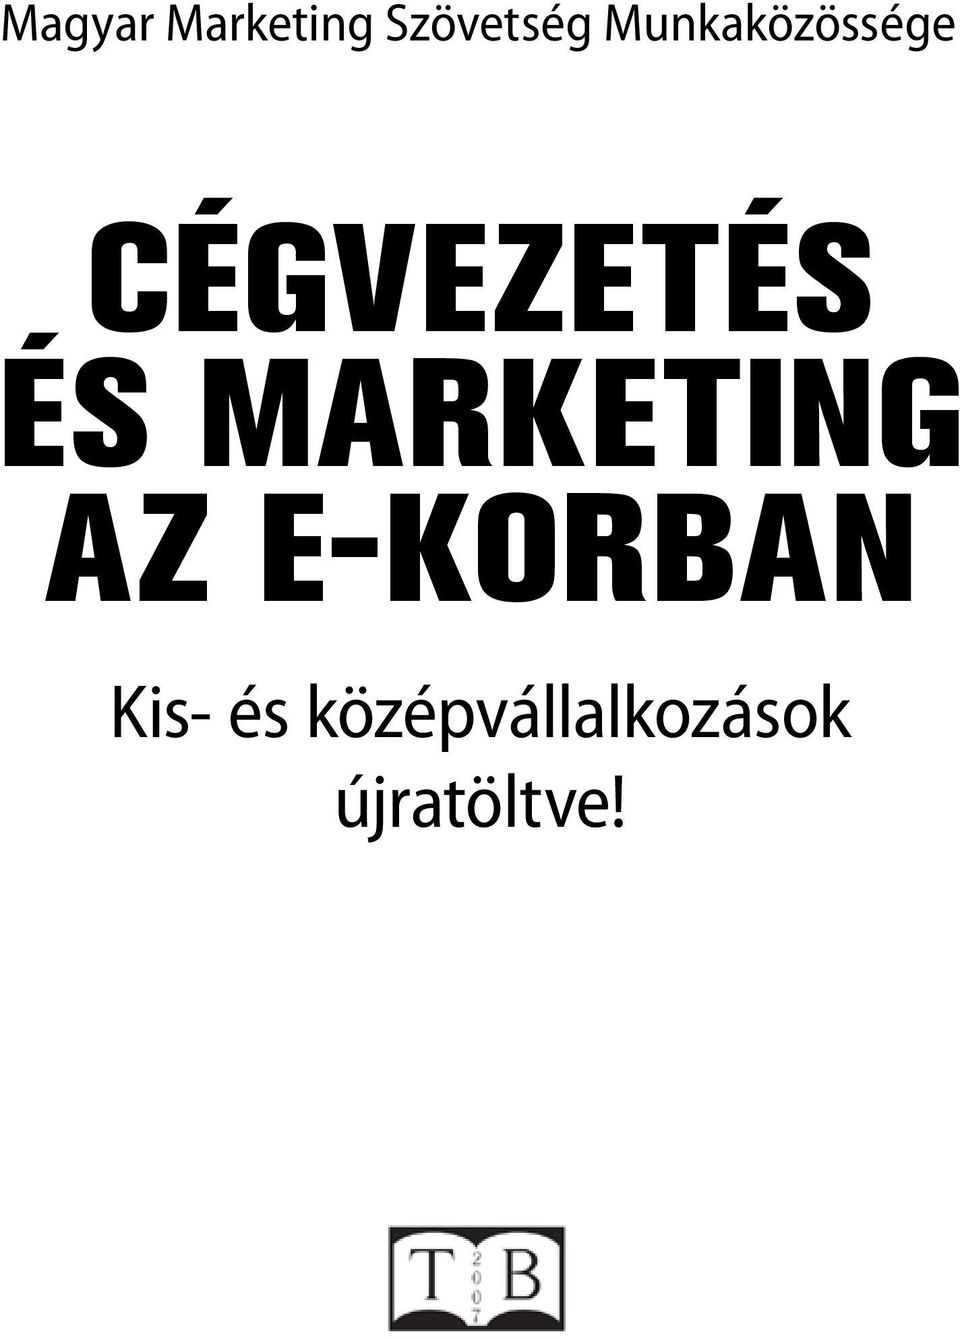 MARKETING AZ E-KORBAN Kis-